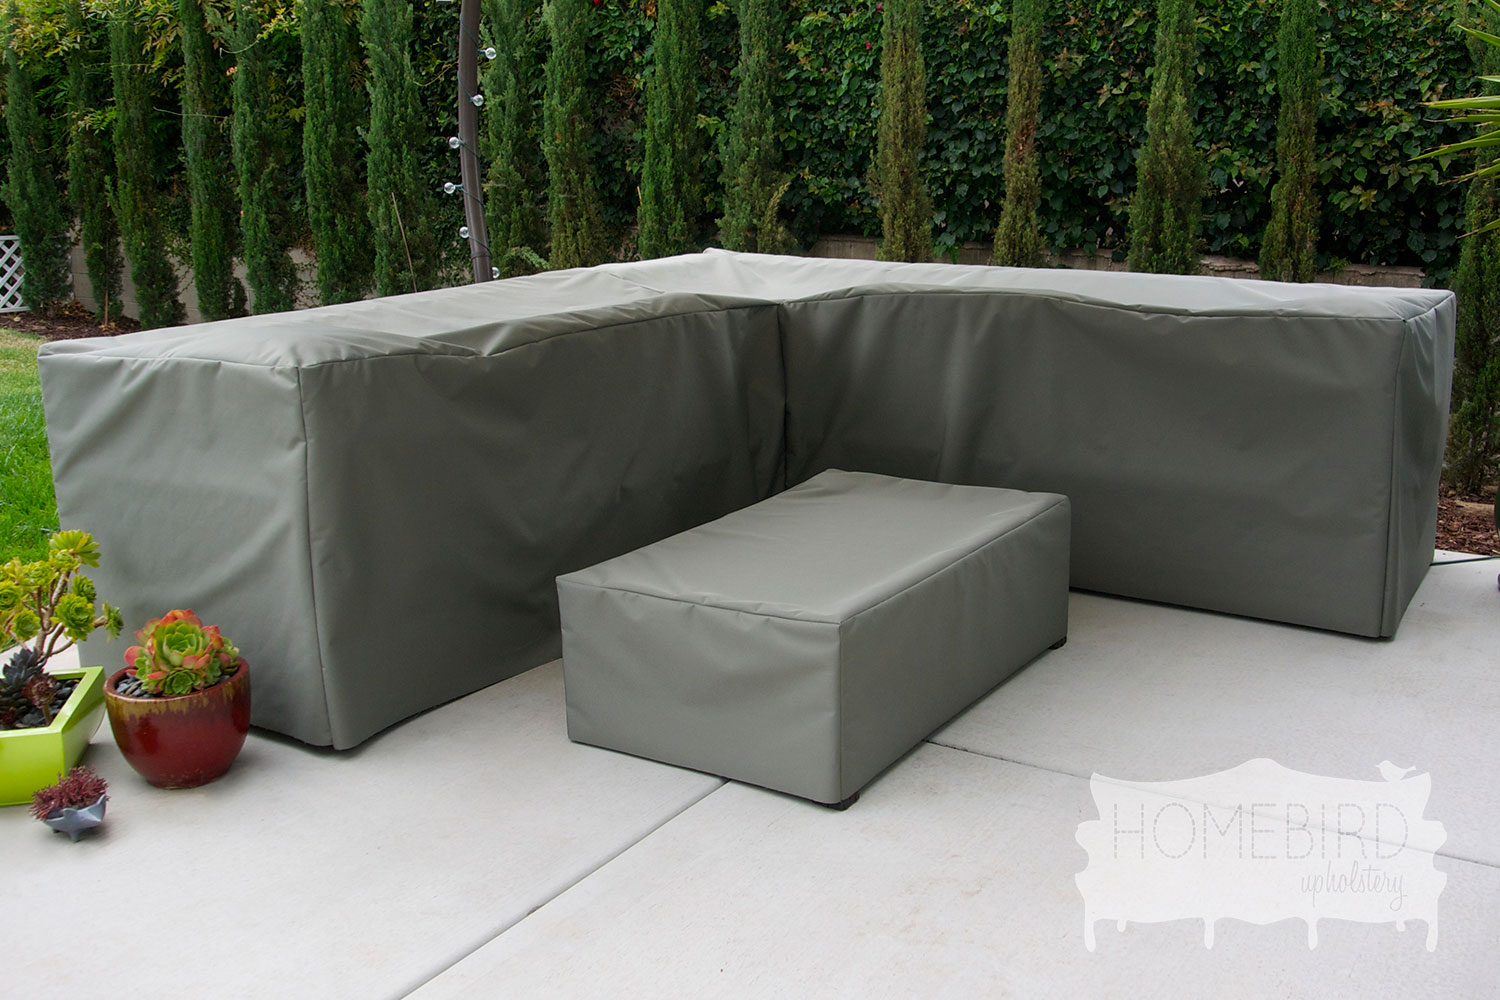 Patio Furniture Covers Orange County Ca